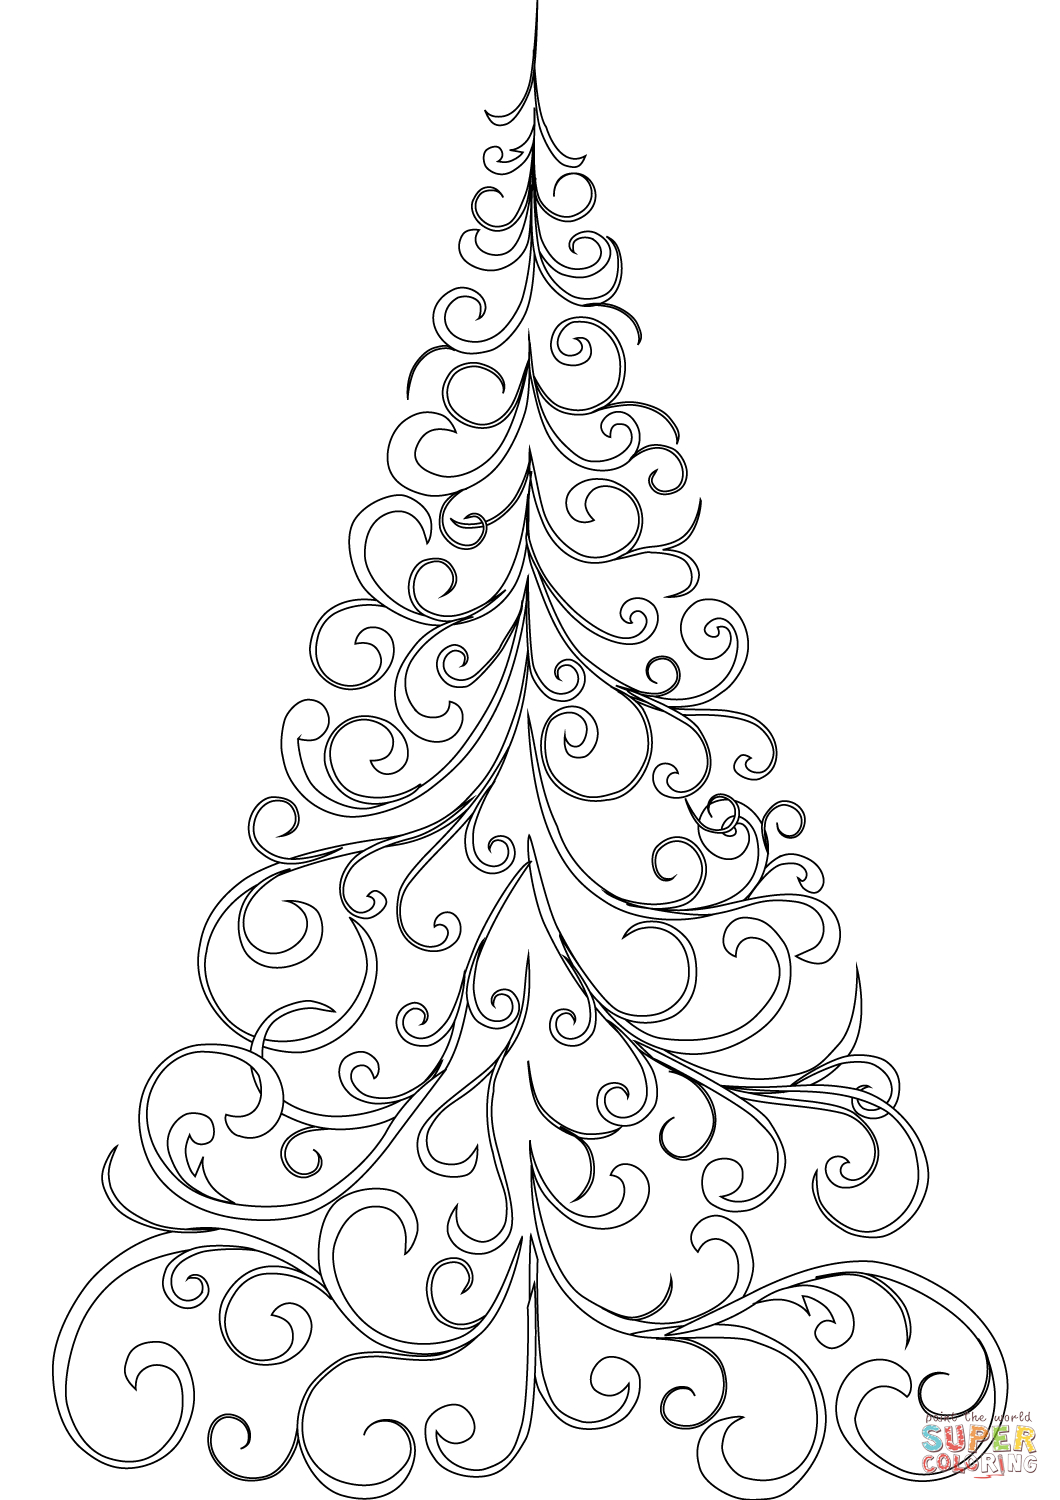 Swirly Christmas Tree Coloring Page From Christmas Tree Category - Free Printable Christmas Tree Template